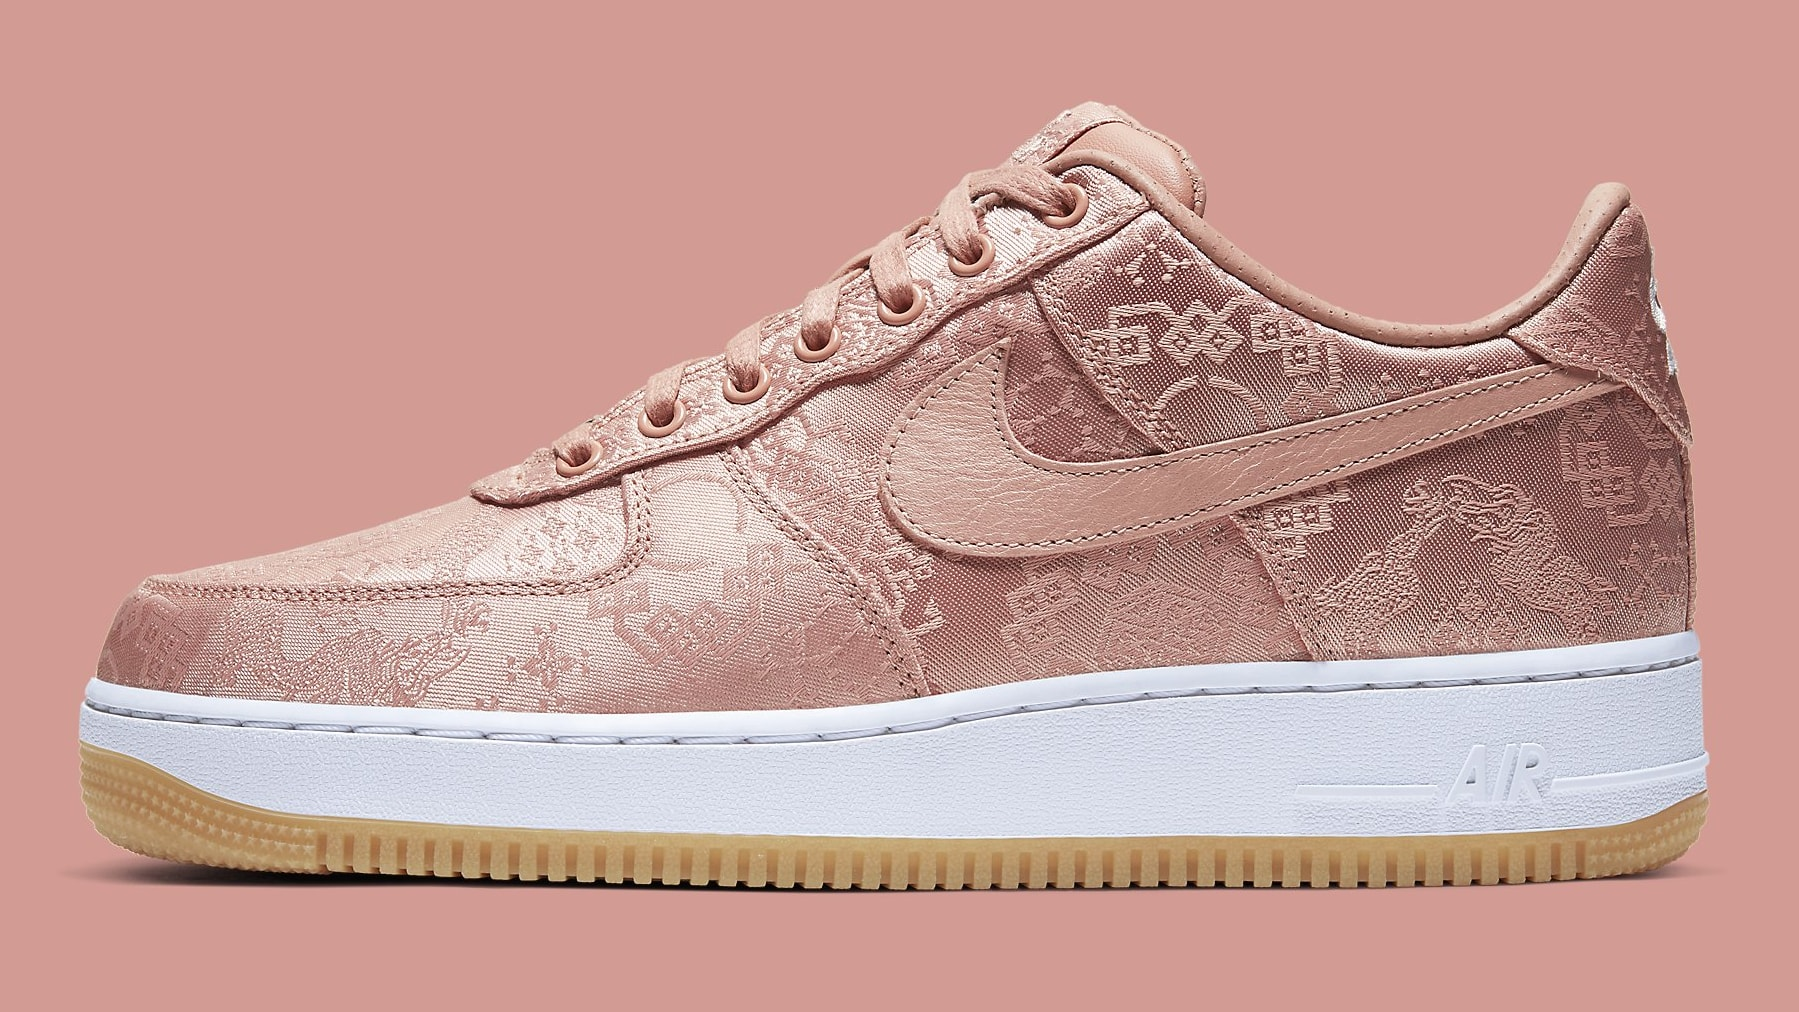 Clot x Nike Air Force 1 Rose Gold Release Date CJ5290-600 Profile